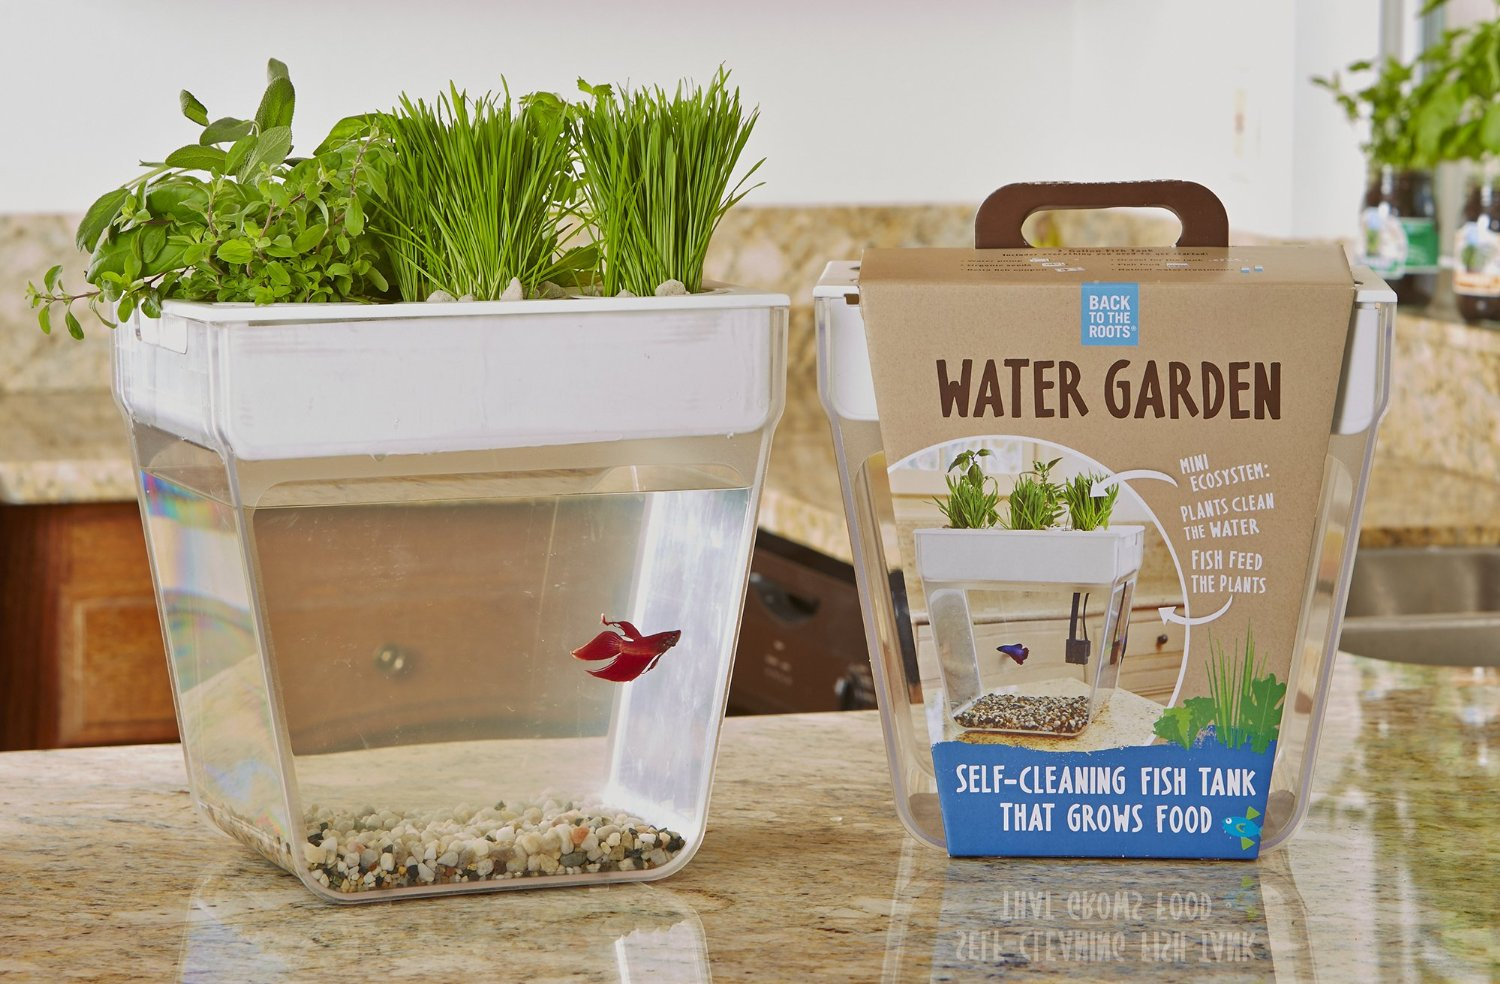 Back to the Roots Water Garden review